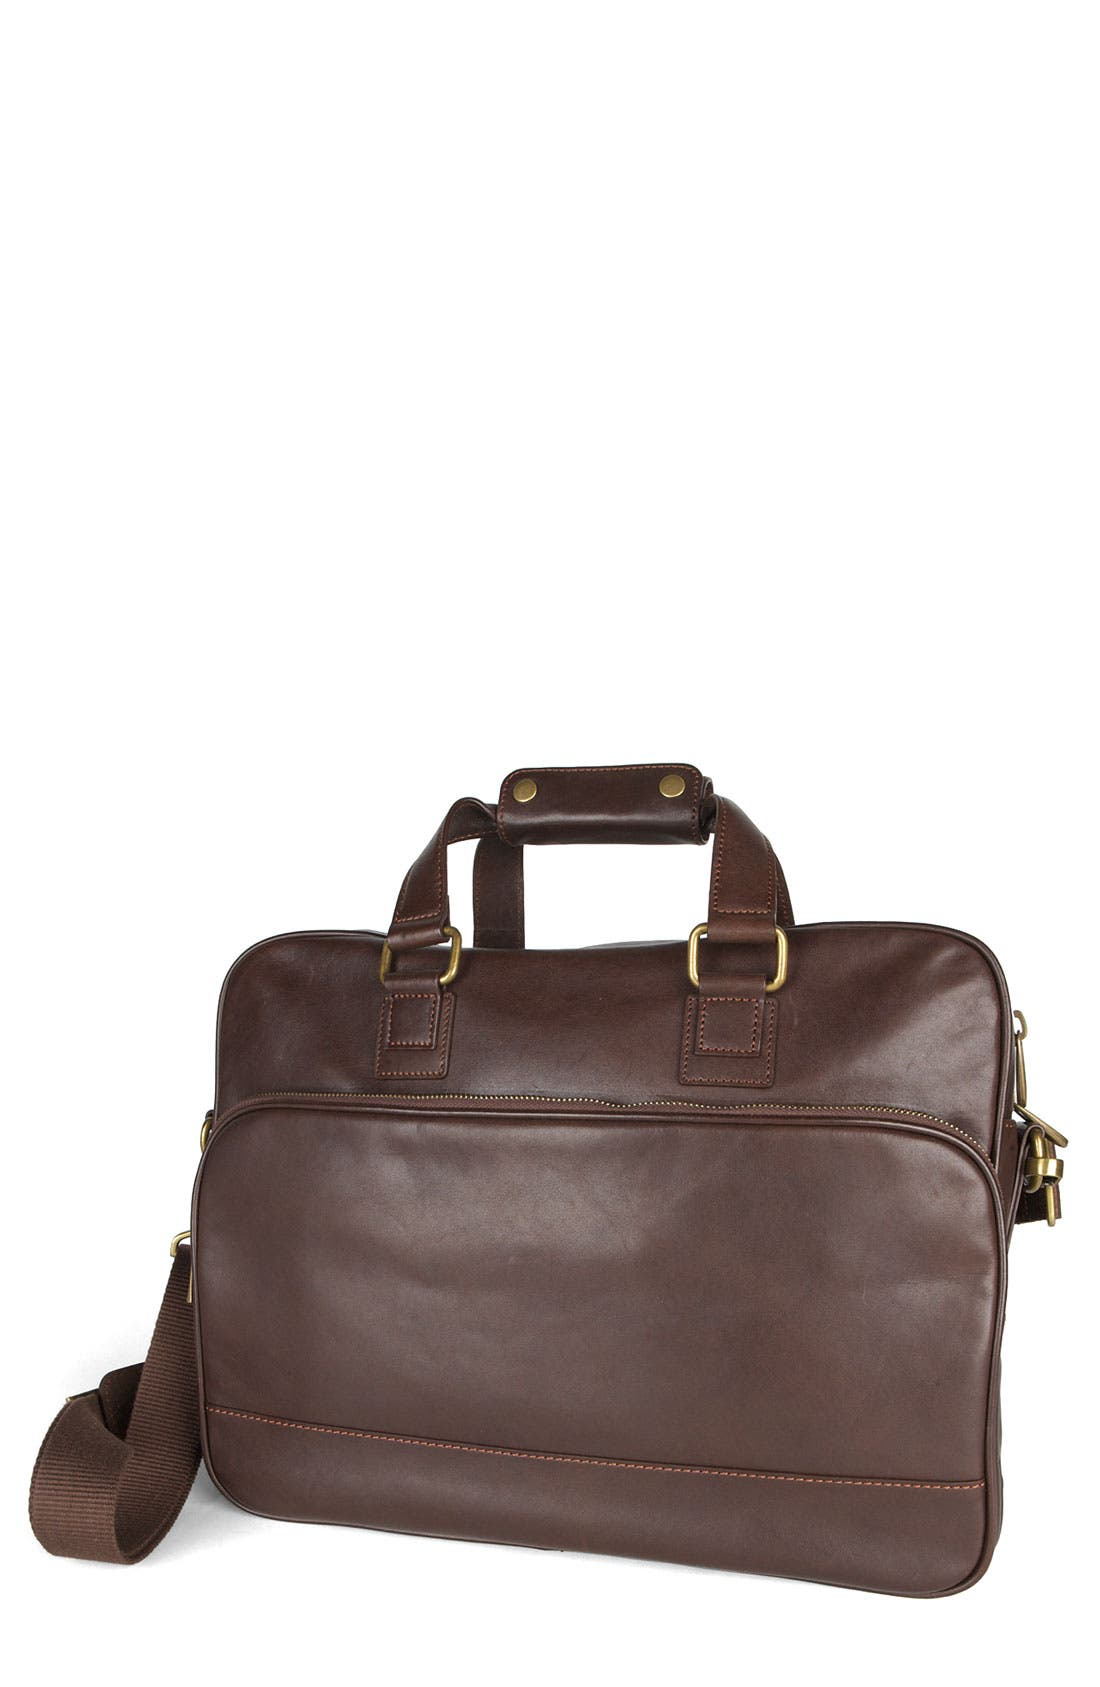 Main Image - Bosca Top Zip Leather Briefcase